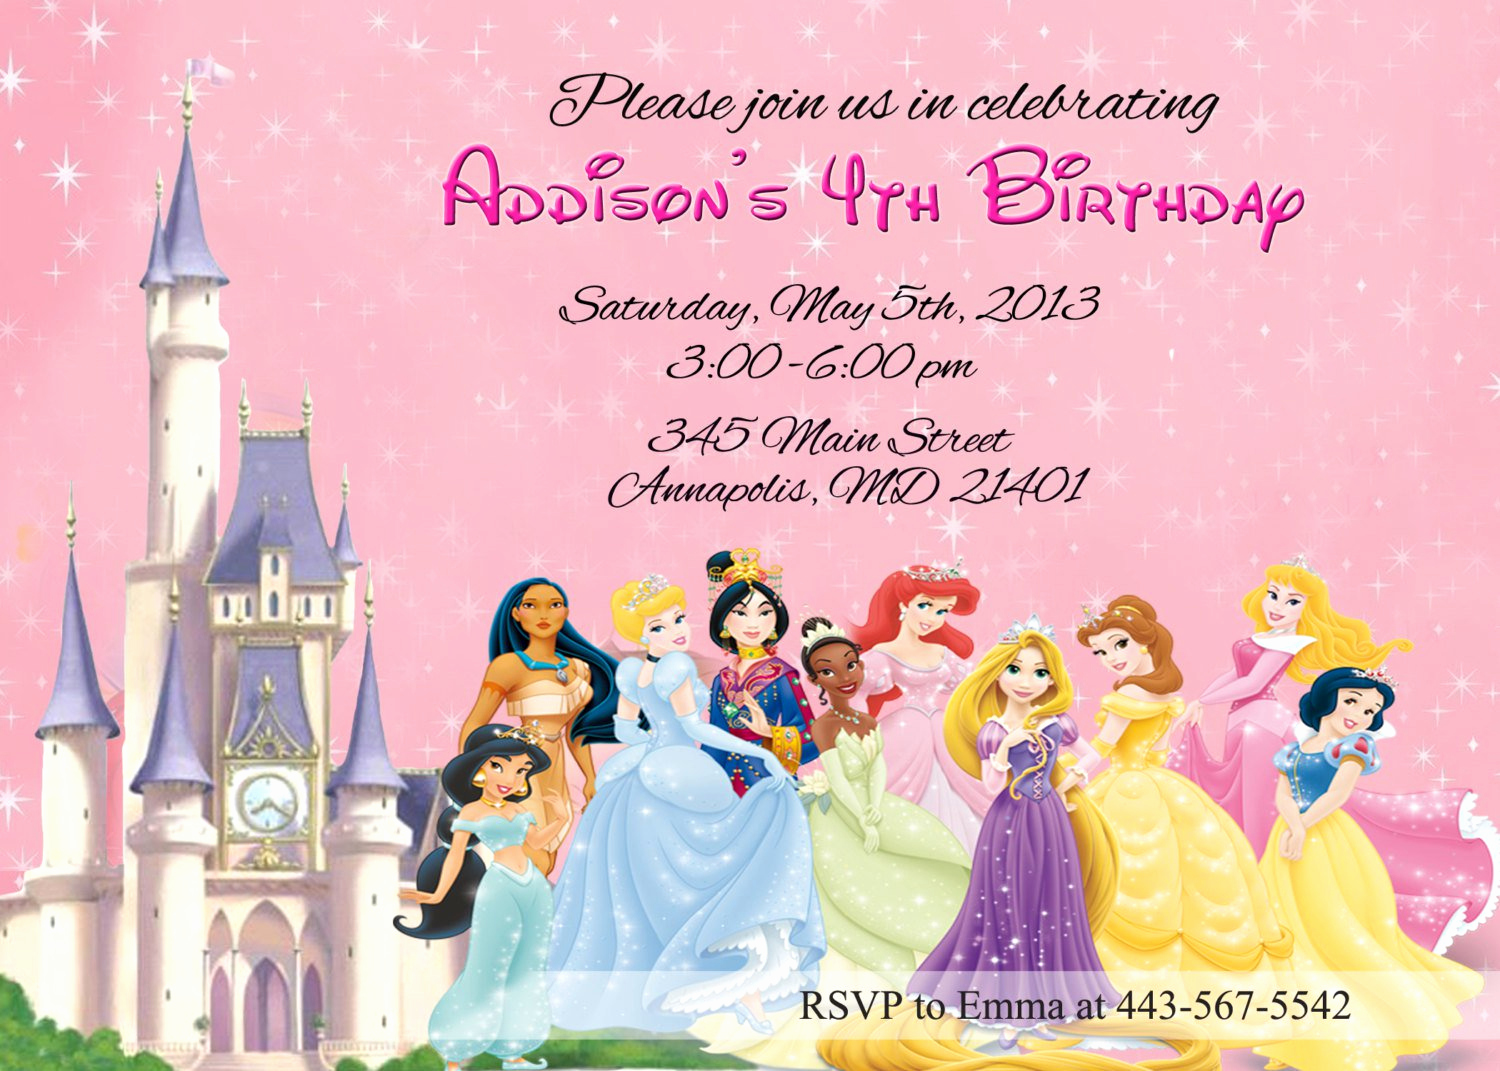 Disney Princess Invitation Template Inspirational Disney Princesses Birthday Invitations Disney Princess